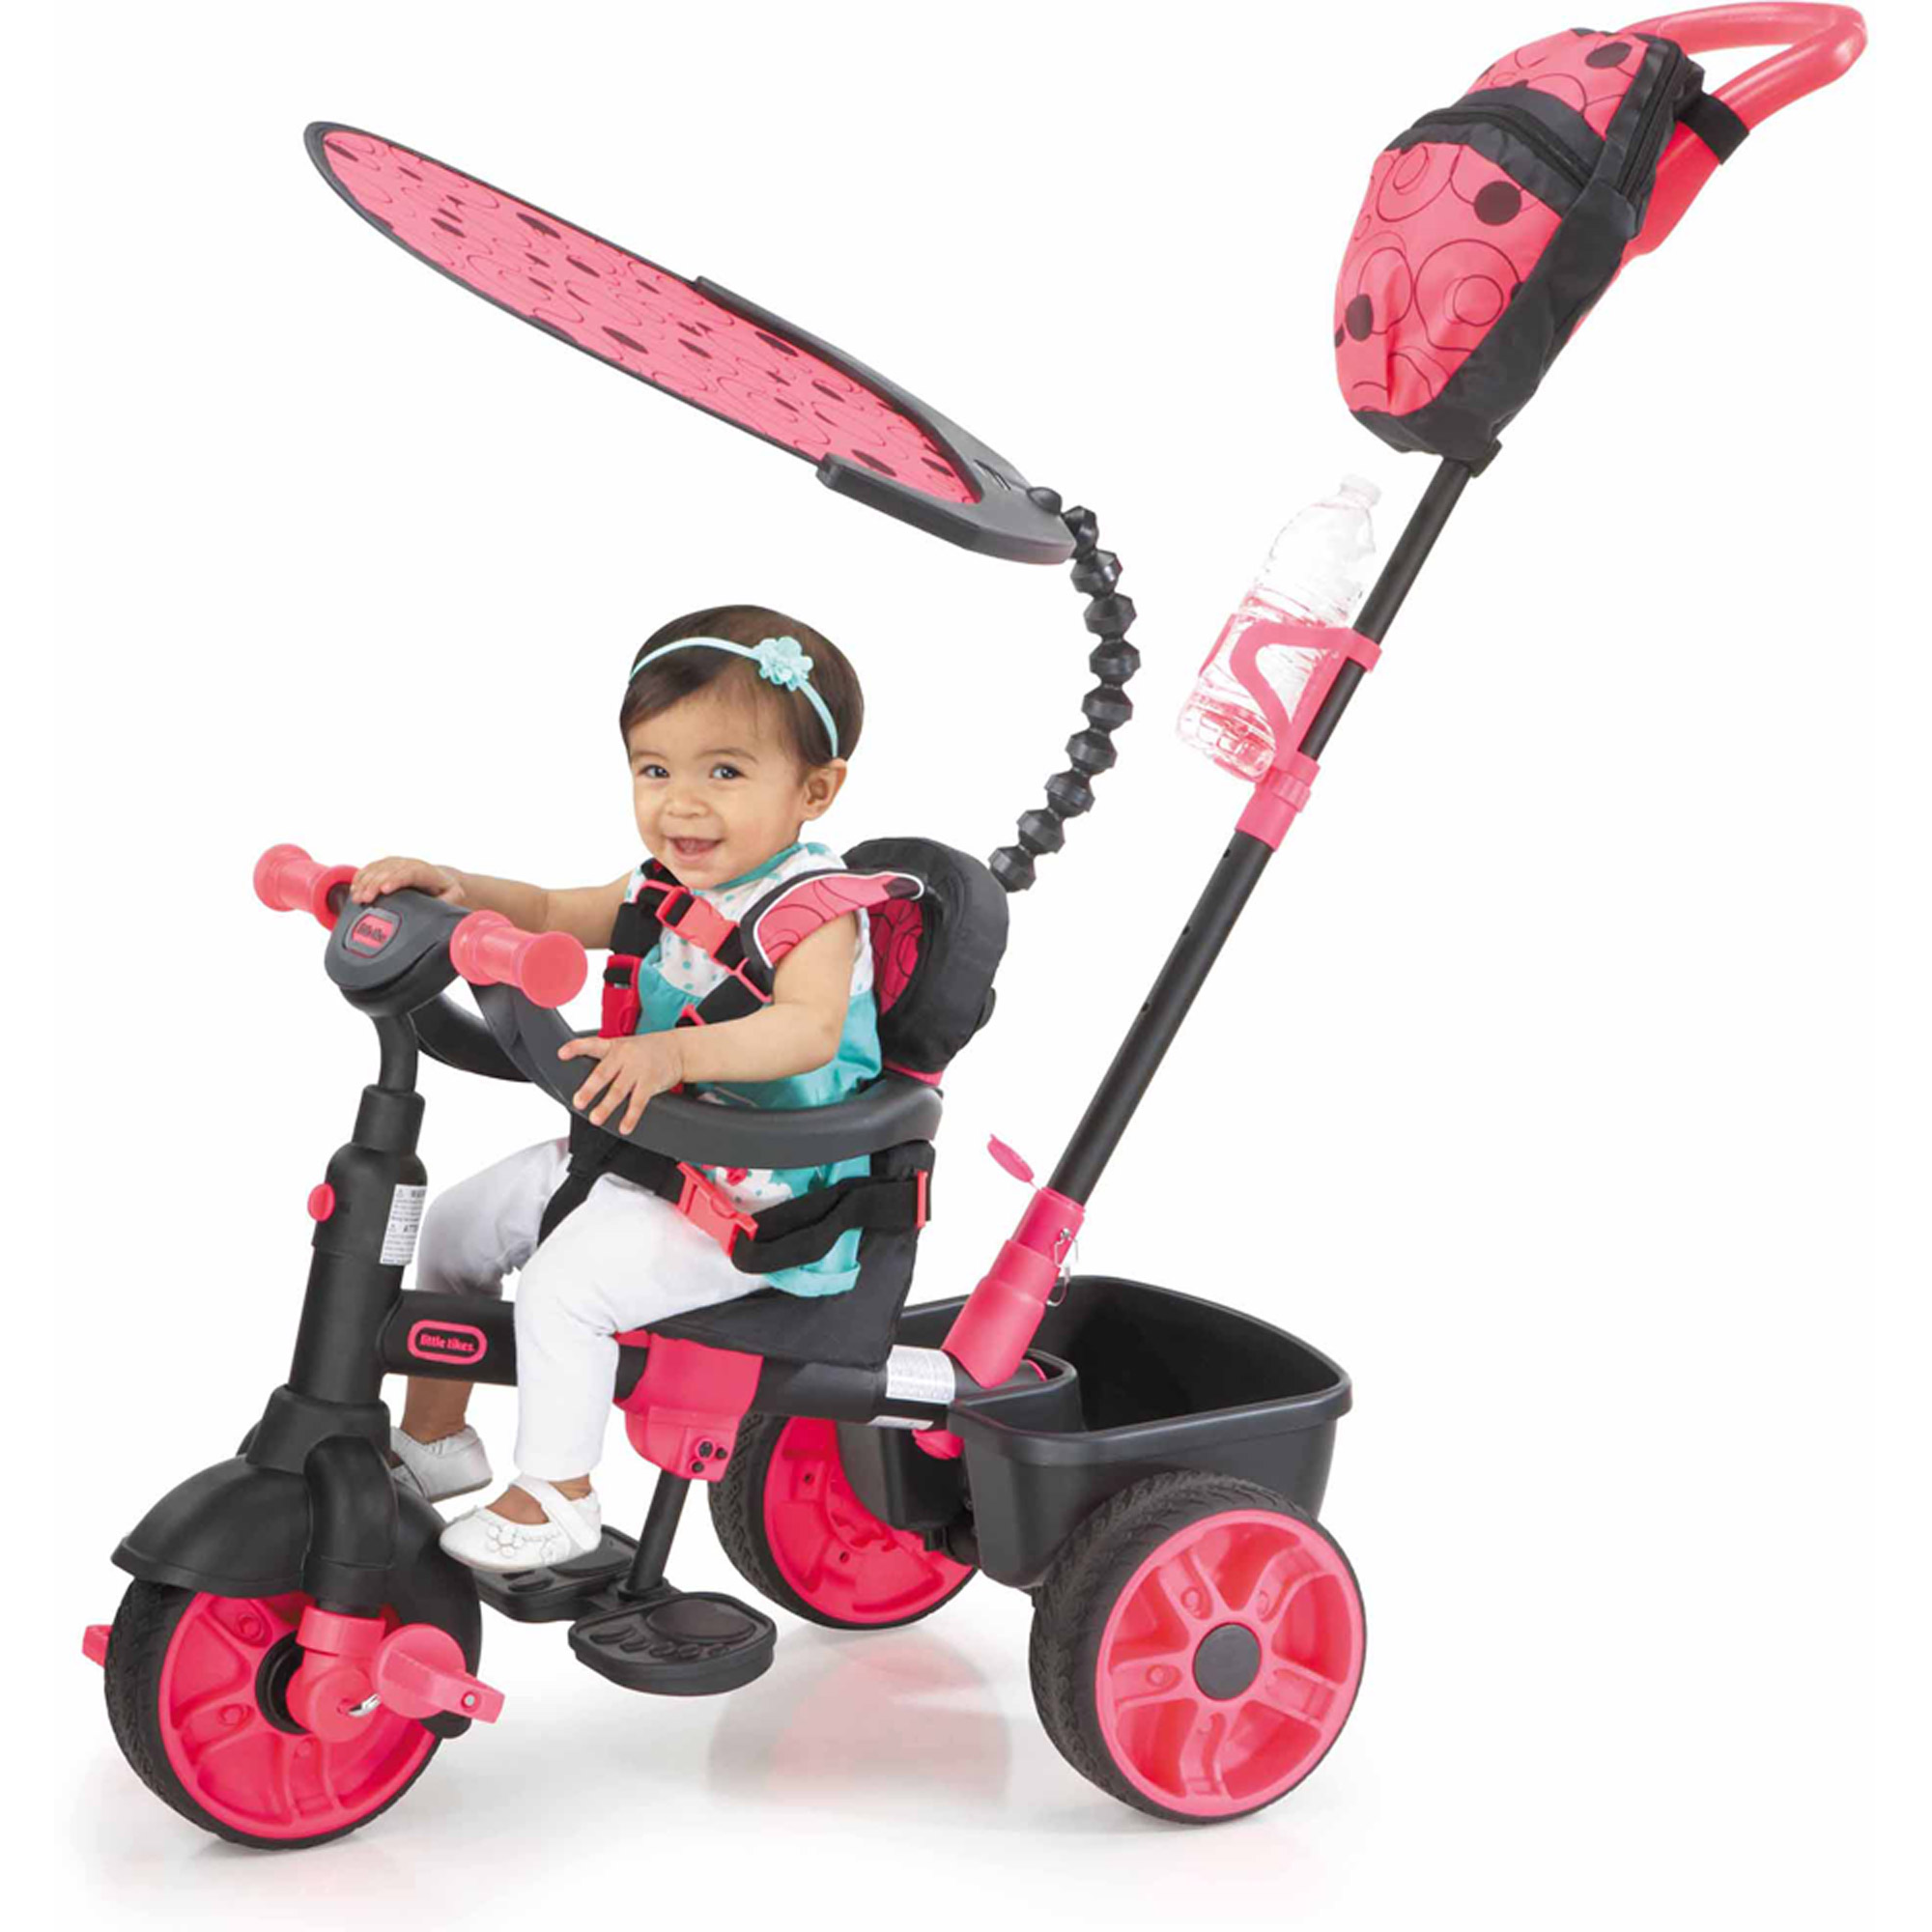 Little Tikes 4-in-1 Deluxe Edition Trike, Neon Pink